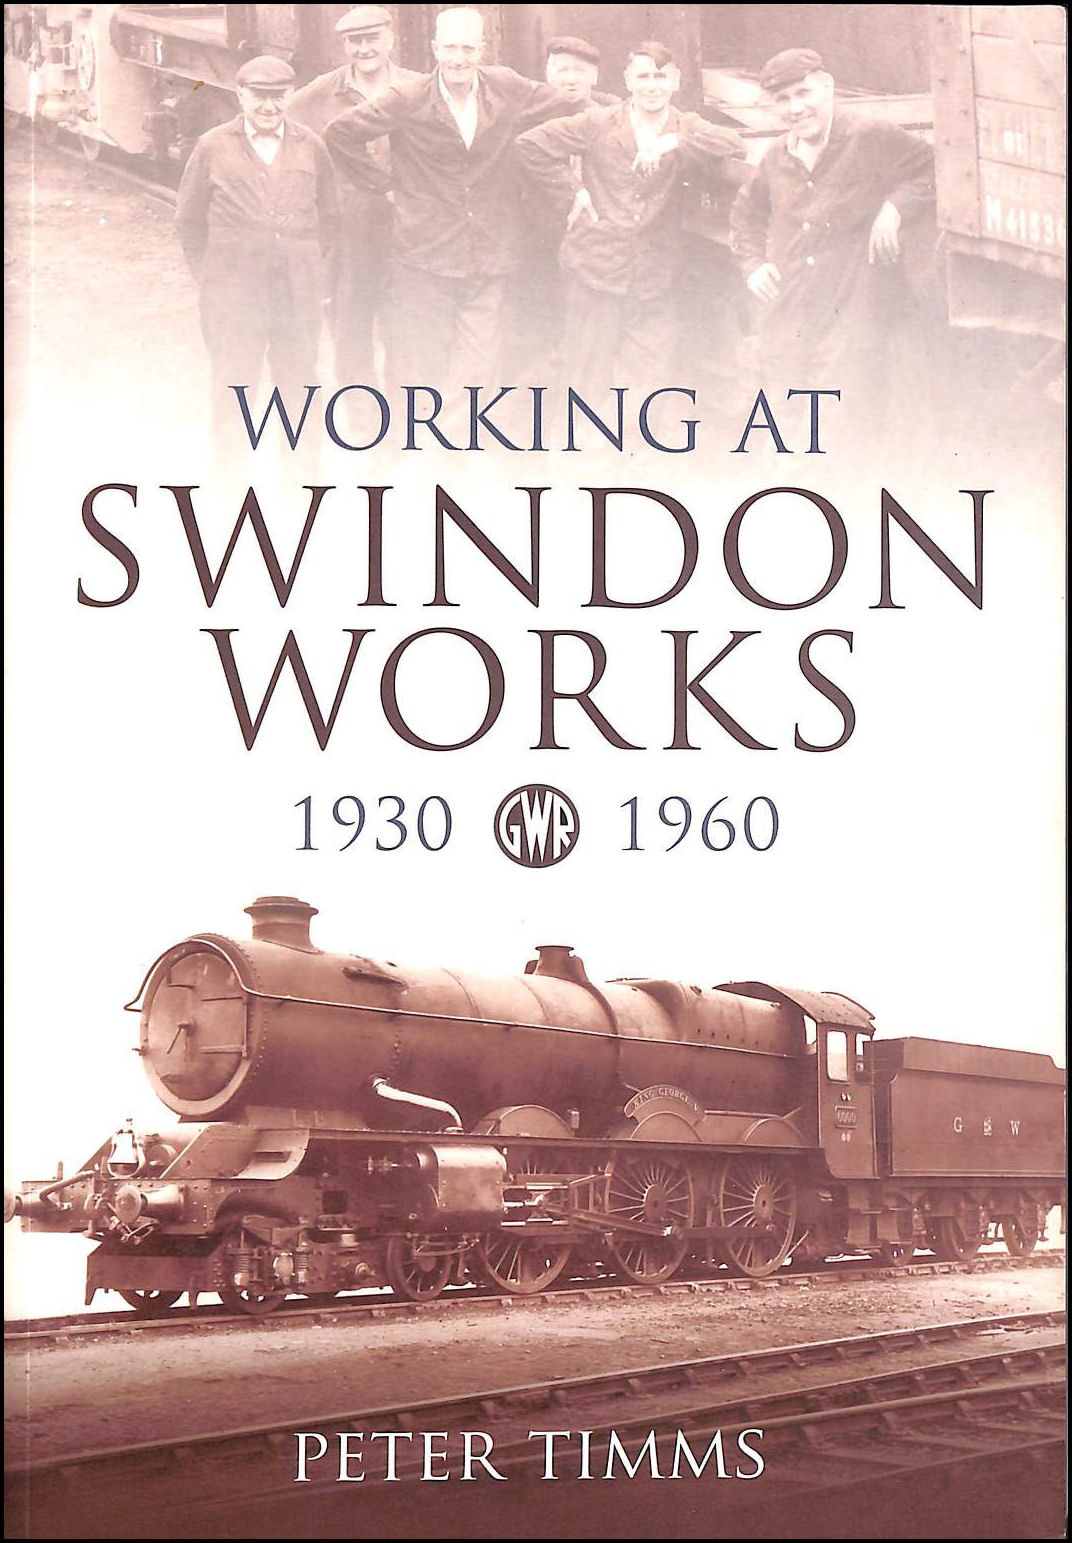 Working at Swindon Works 1930-1960, Timms, Peter